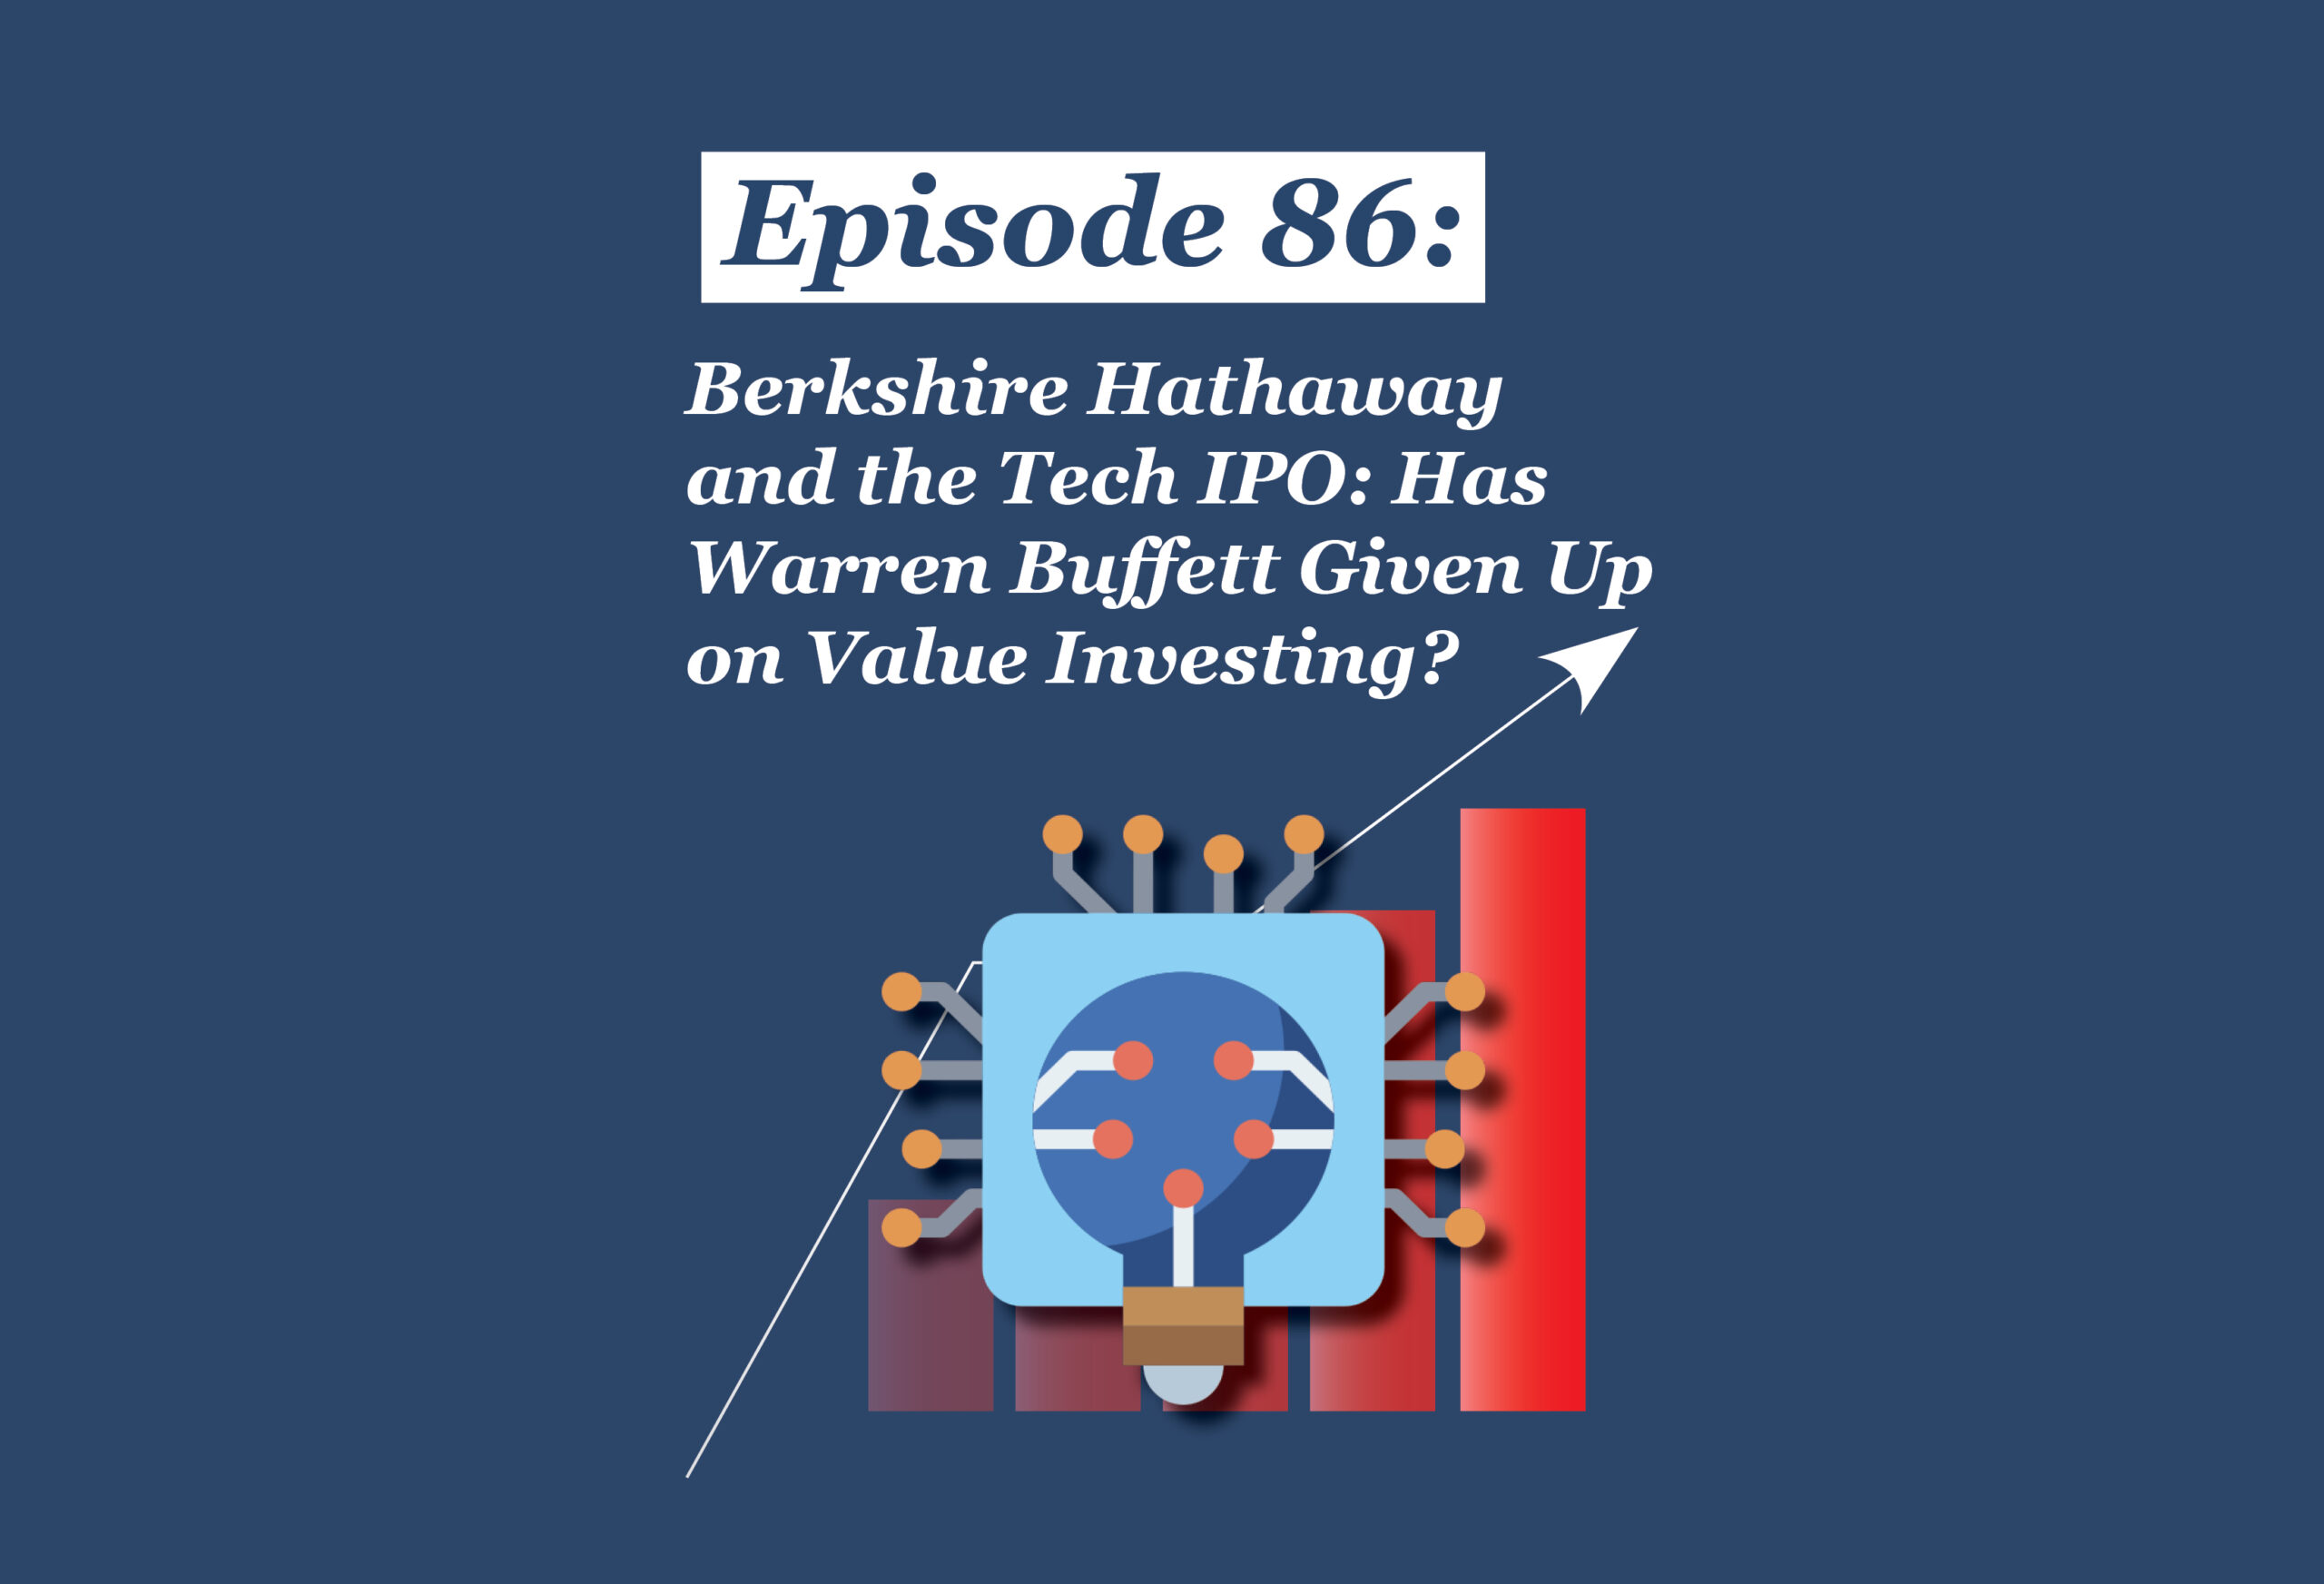 Absolute Return Podcast #86: Berkshire Hathaway and the Tech IPO: Has Warren Buffett Given Up on Value Investing?